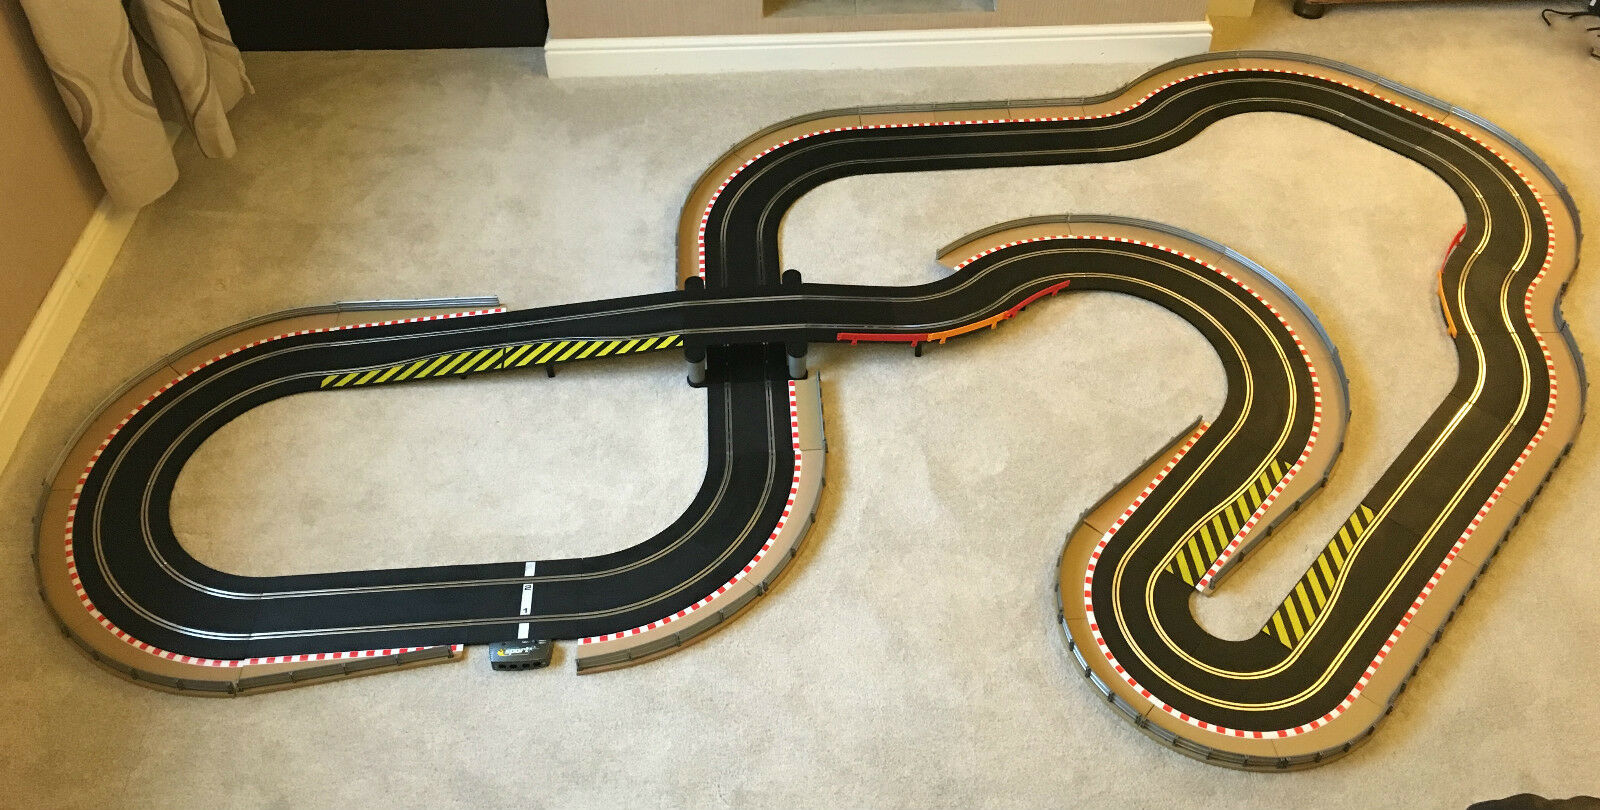 Scalextric Sport Large Layout wth Bridge   Hairpin & 2 Cars